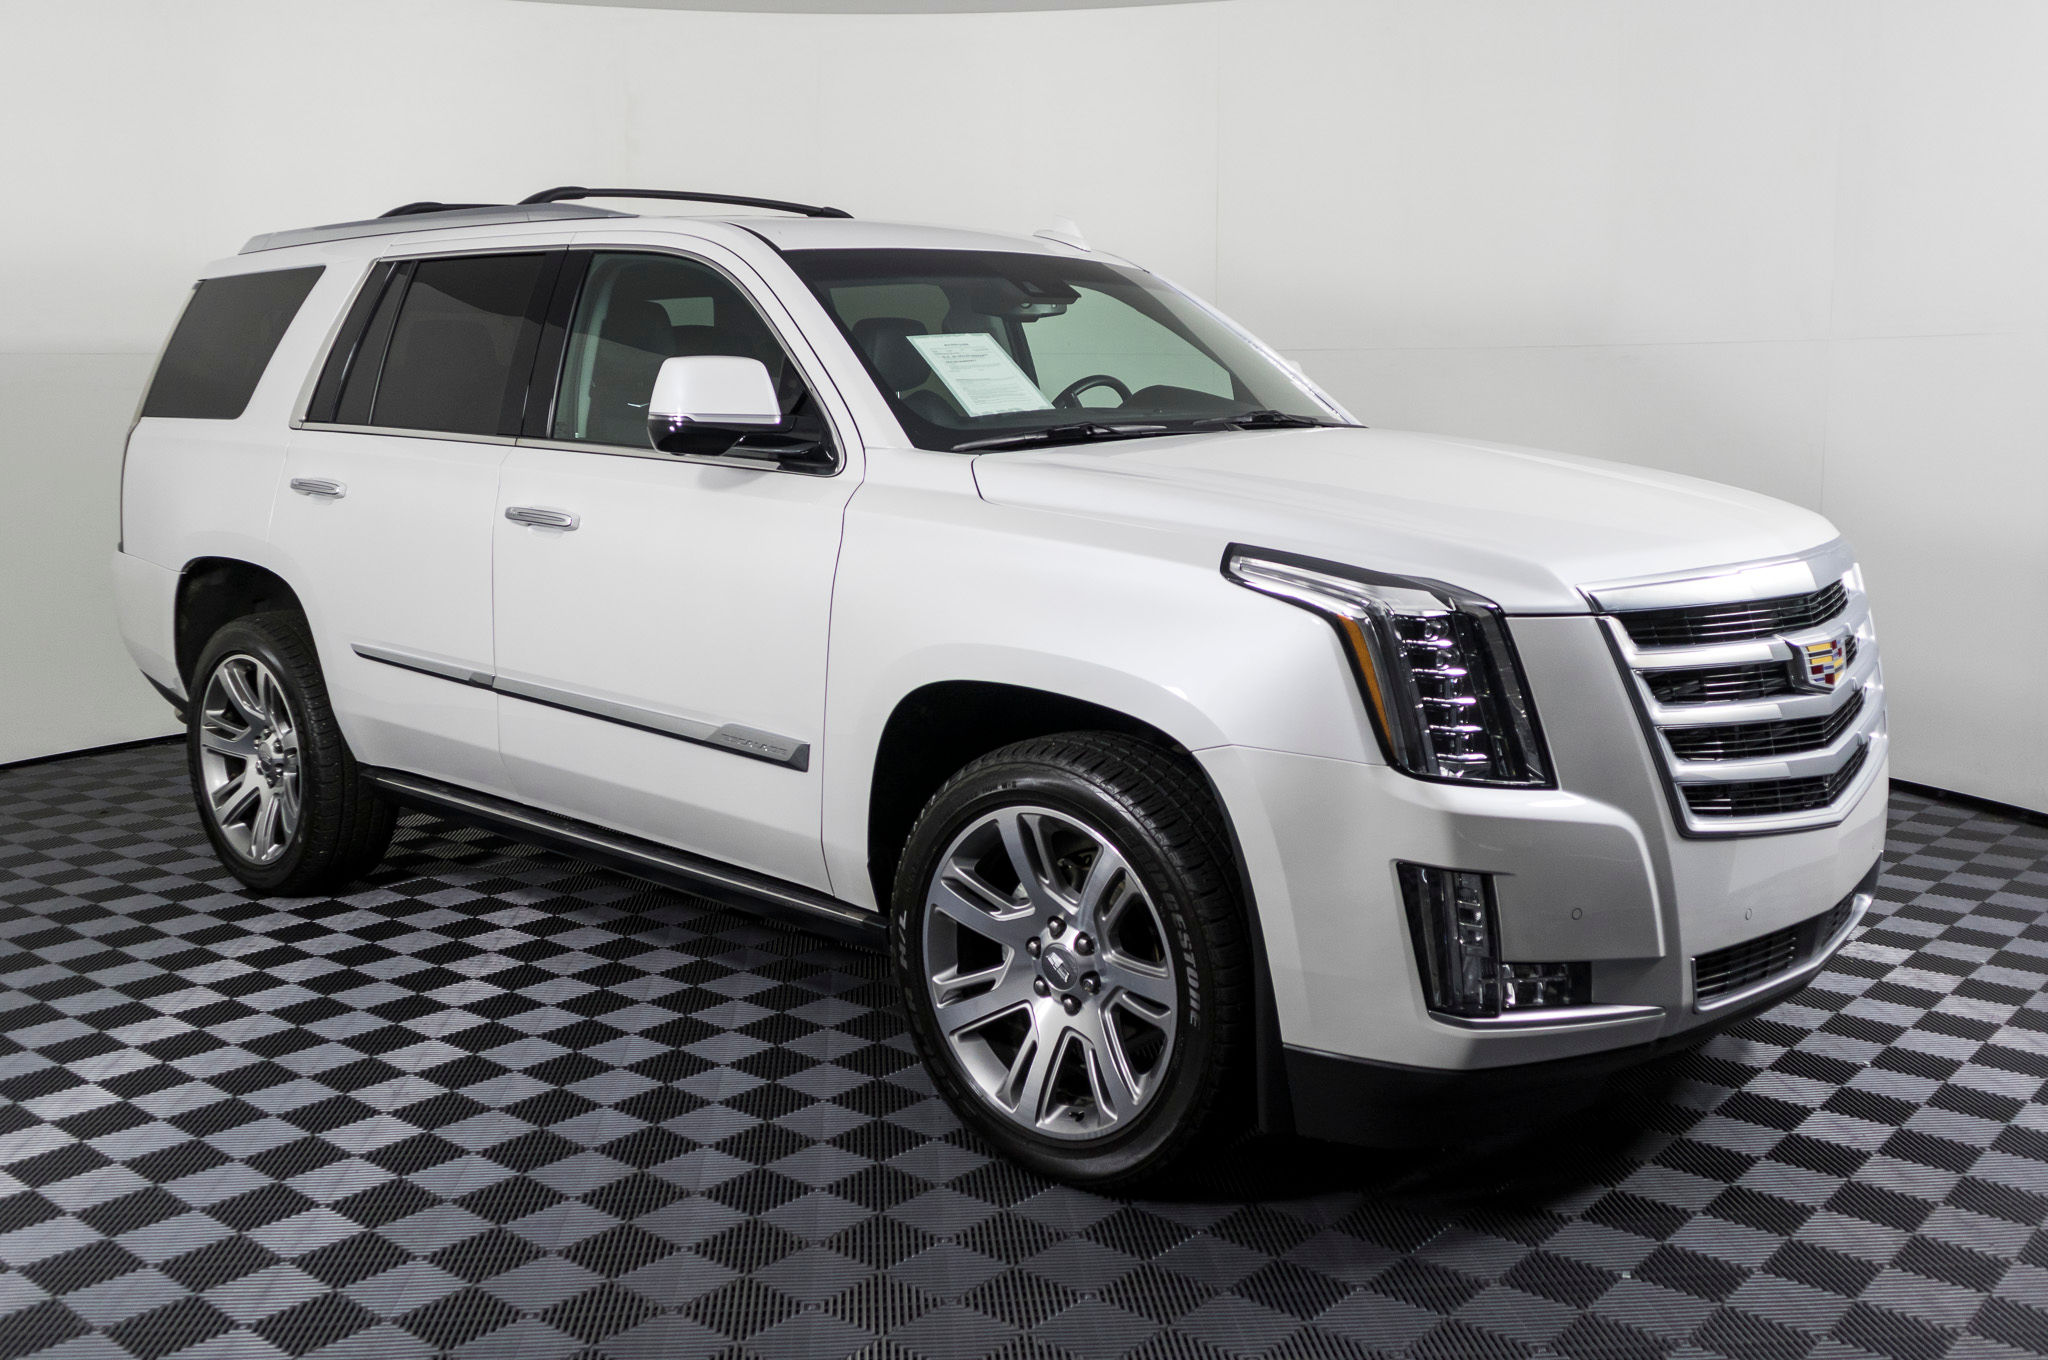 test expert drive escalade buy cadillac suv car review for sale new